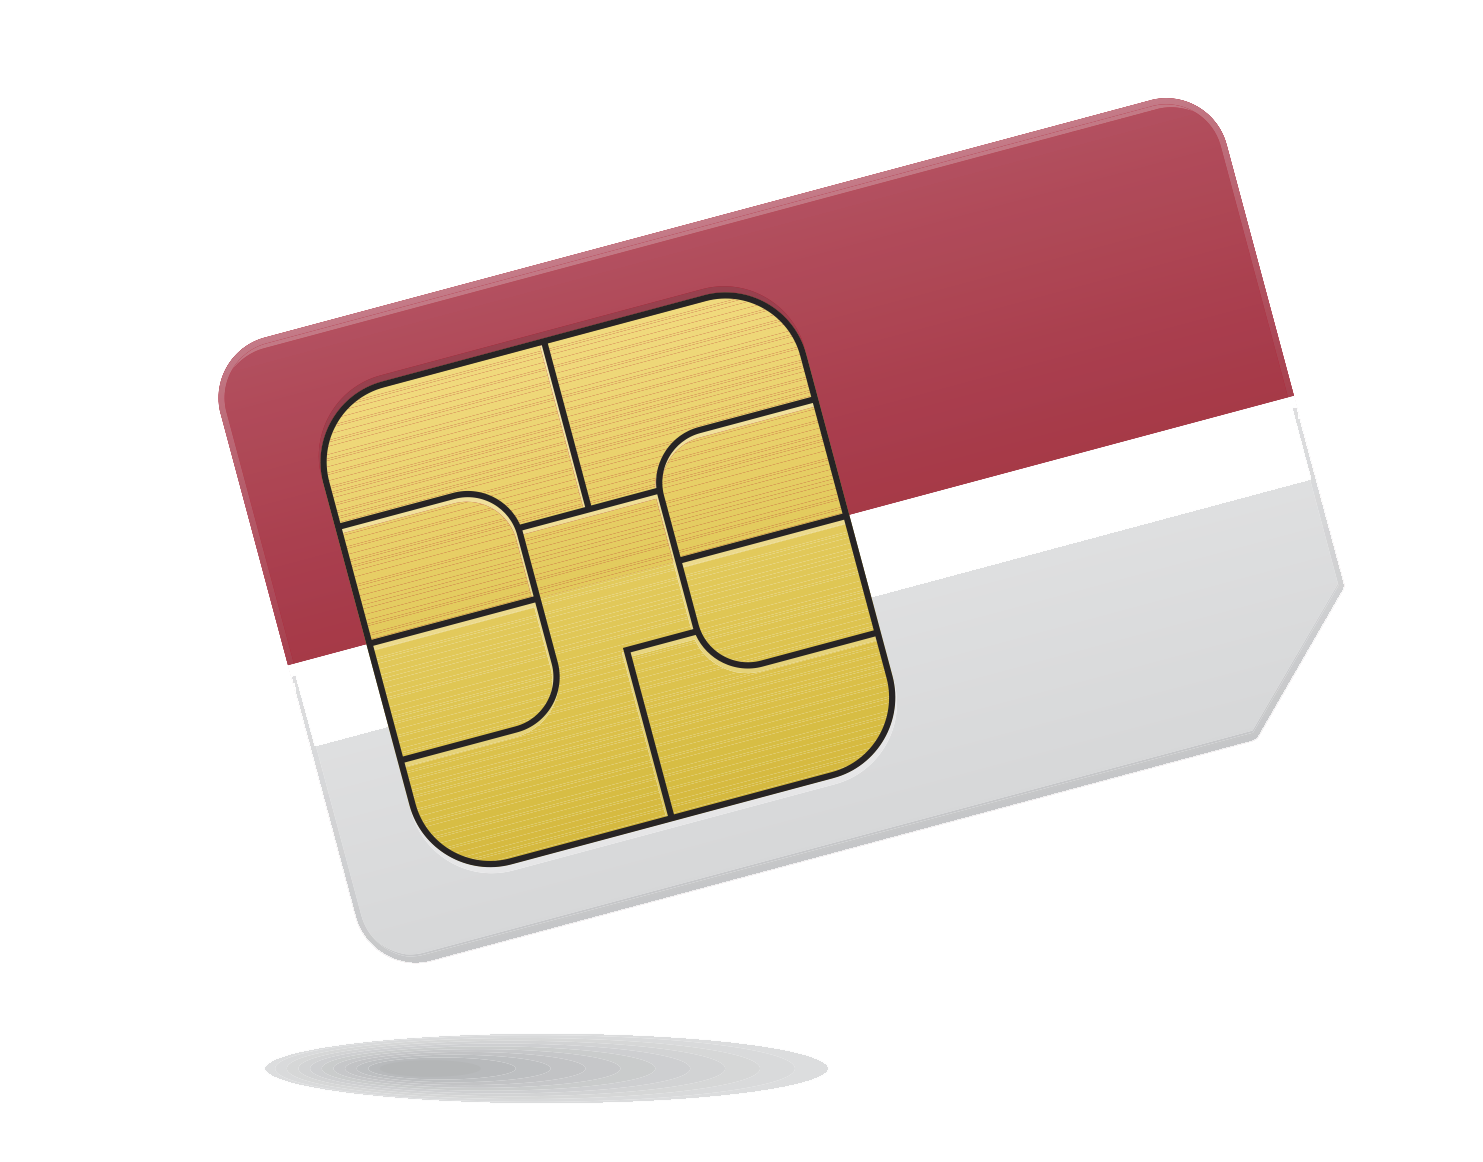 Download Sim Card Png Clipart HQ PNG Image.